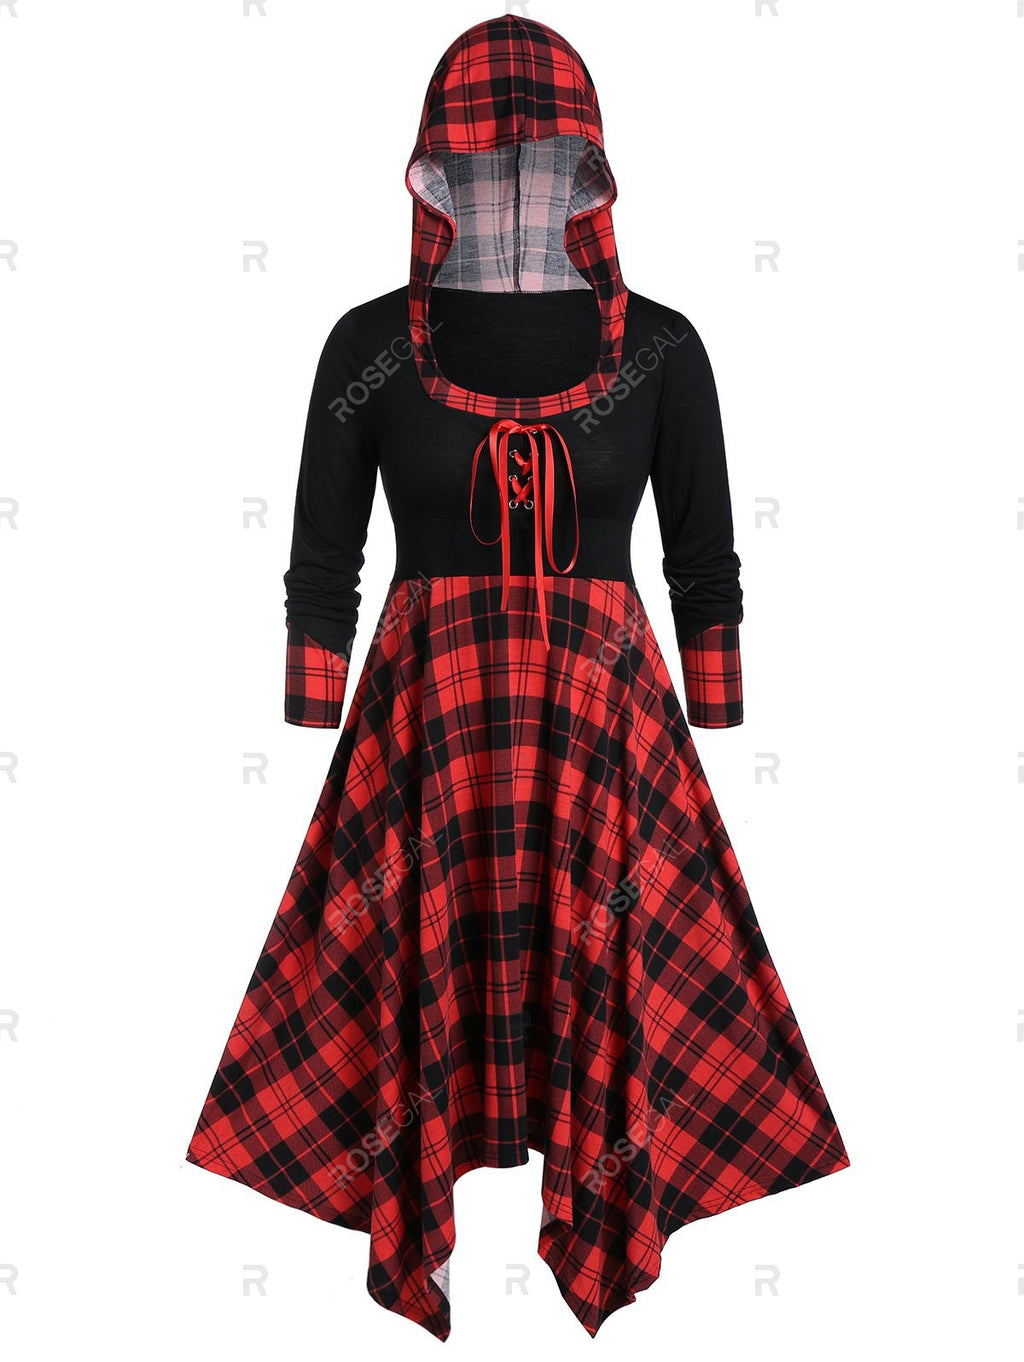 Plus Size Handkerchief Hooded Plaid Midi Dress